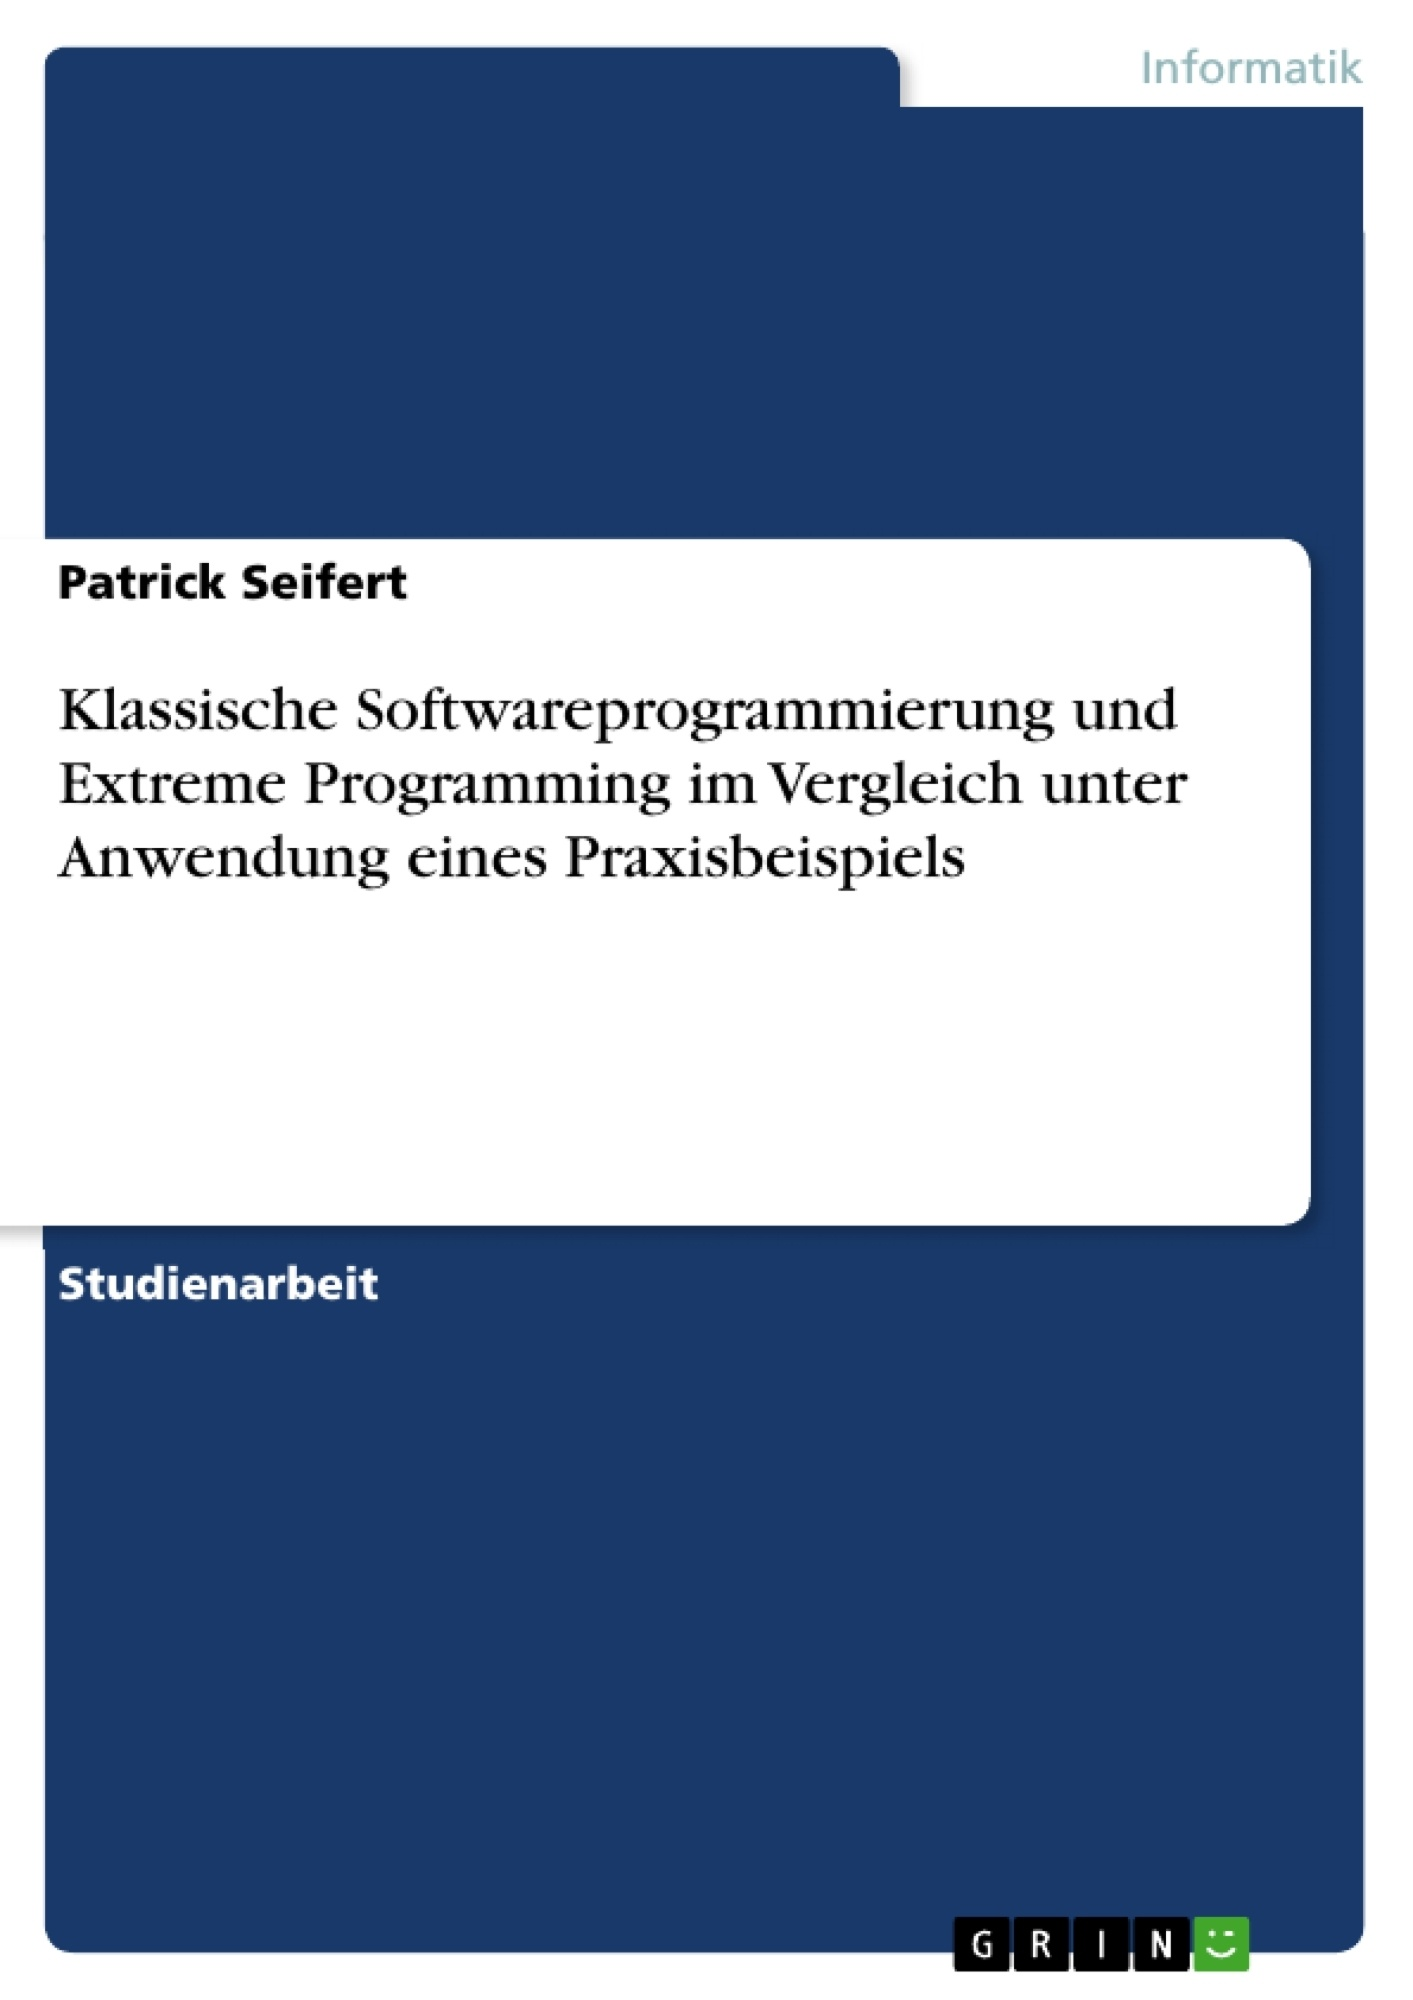 "essay on extreme programming Praise for extreme programming explained, second edition ""in this second edition of extreme programming explained,kent beck orga- nizes and presents five years' worth of experiences, growth, and change revolv."